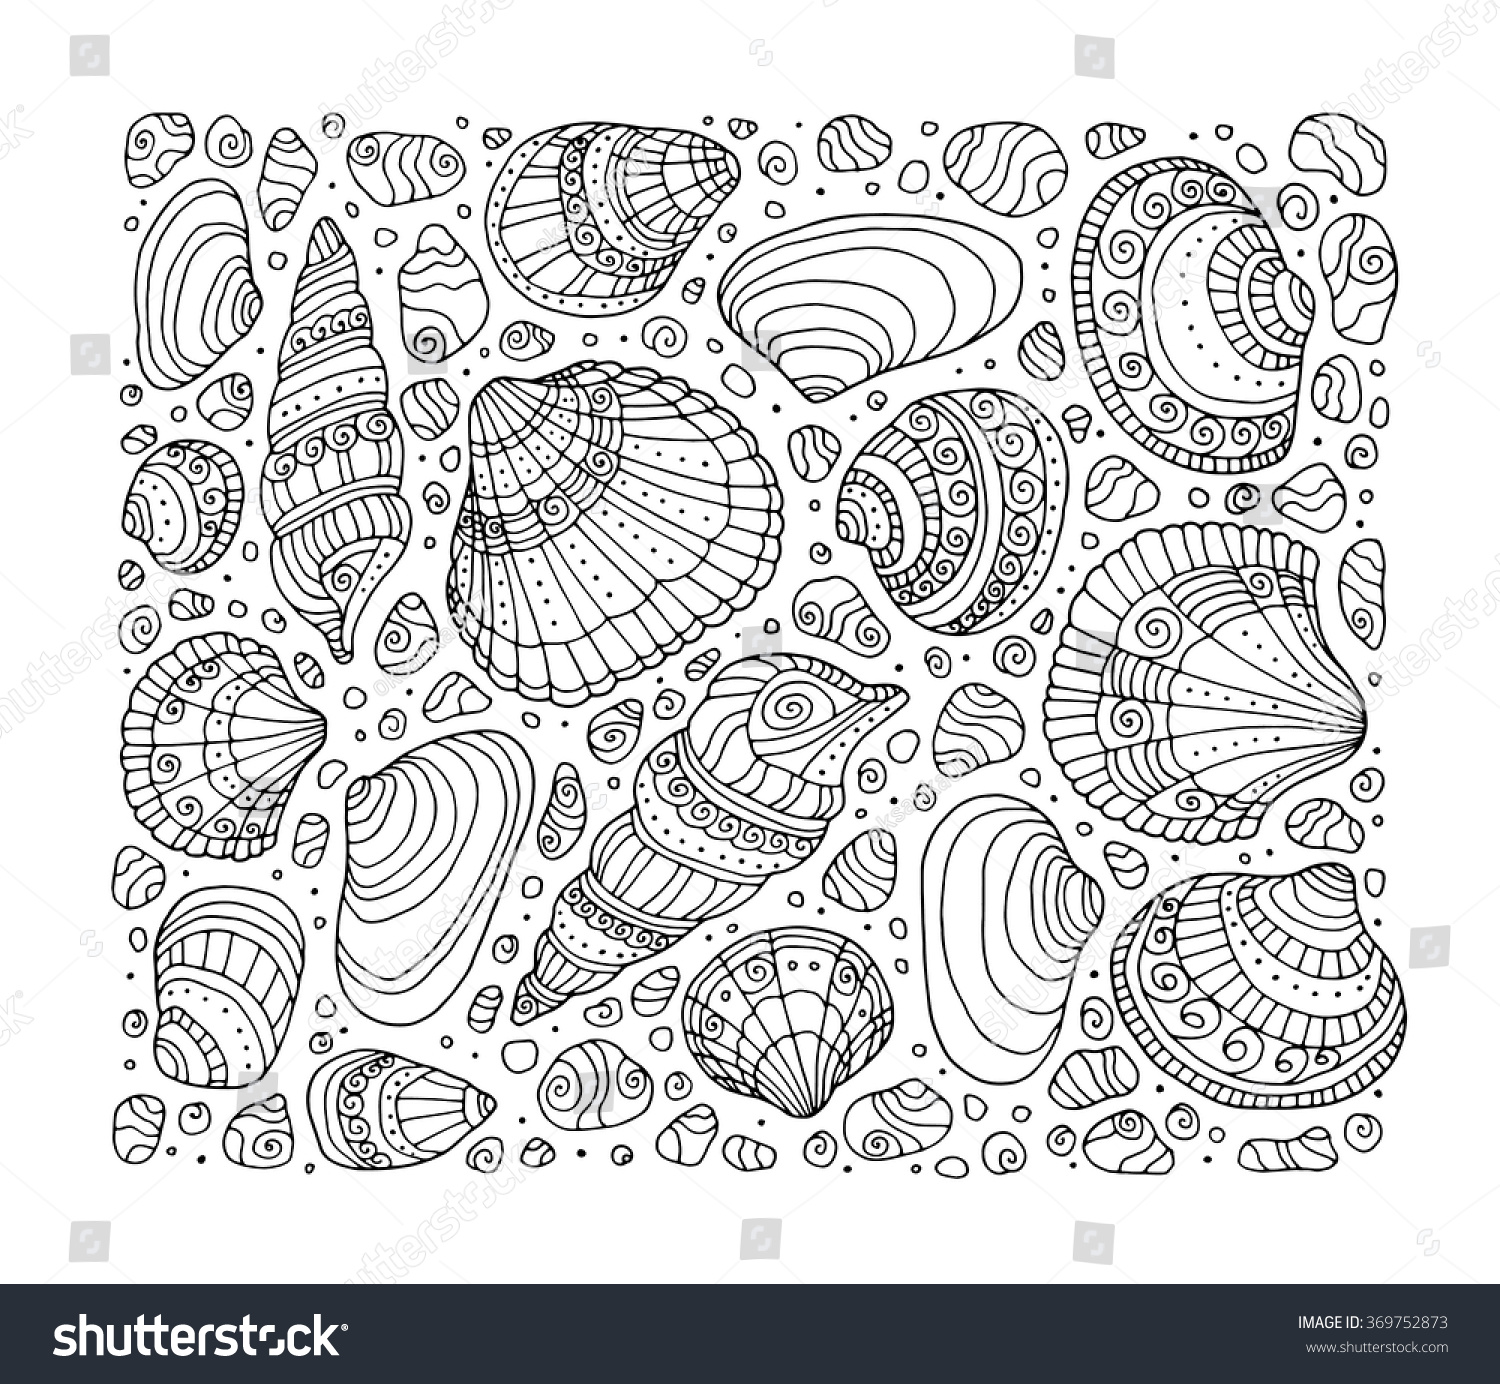 Coloring Pages Background Coloring Pages seashell pattern art background vector illustration stock zentangle coloring book page for adult